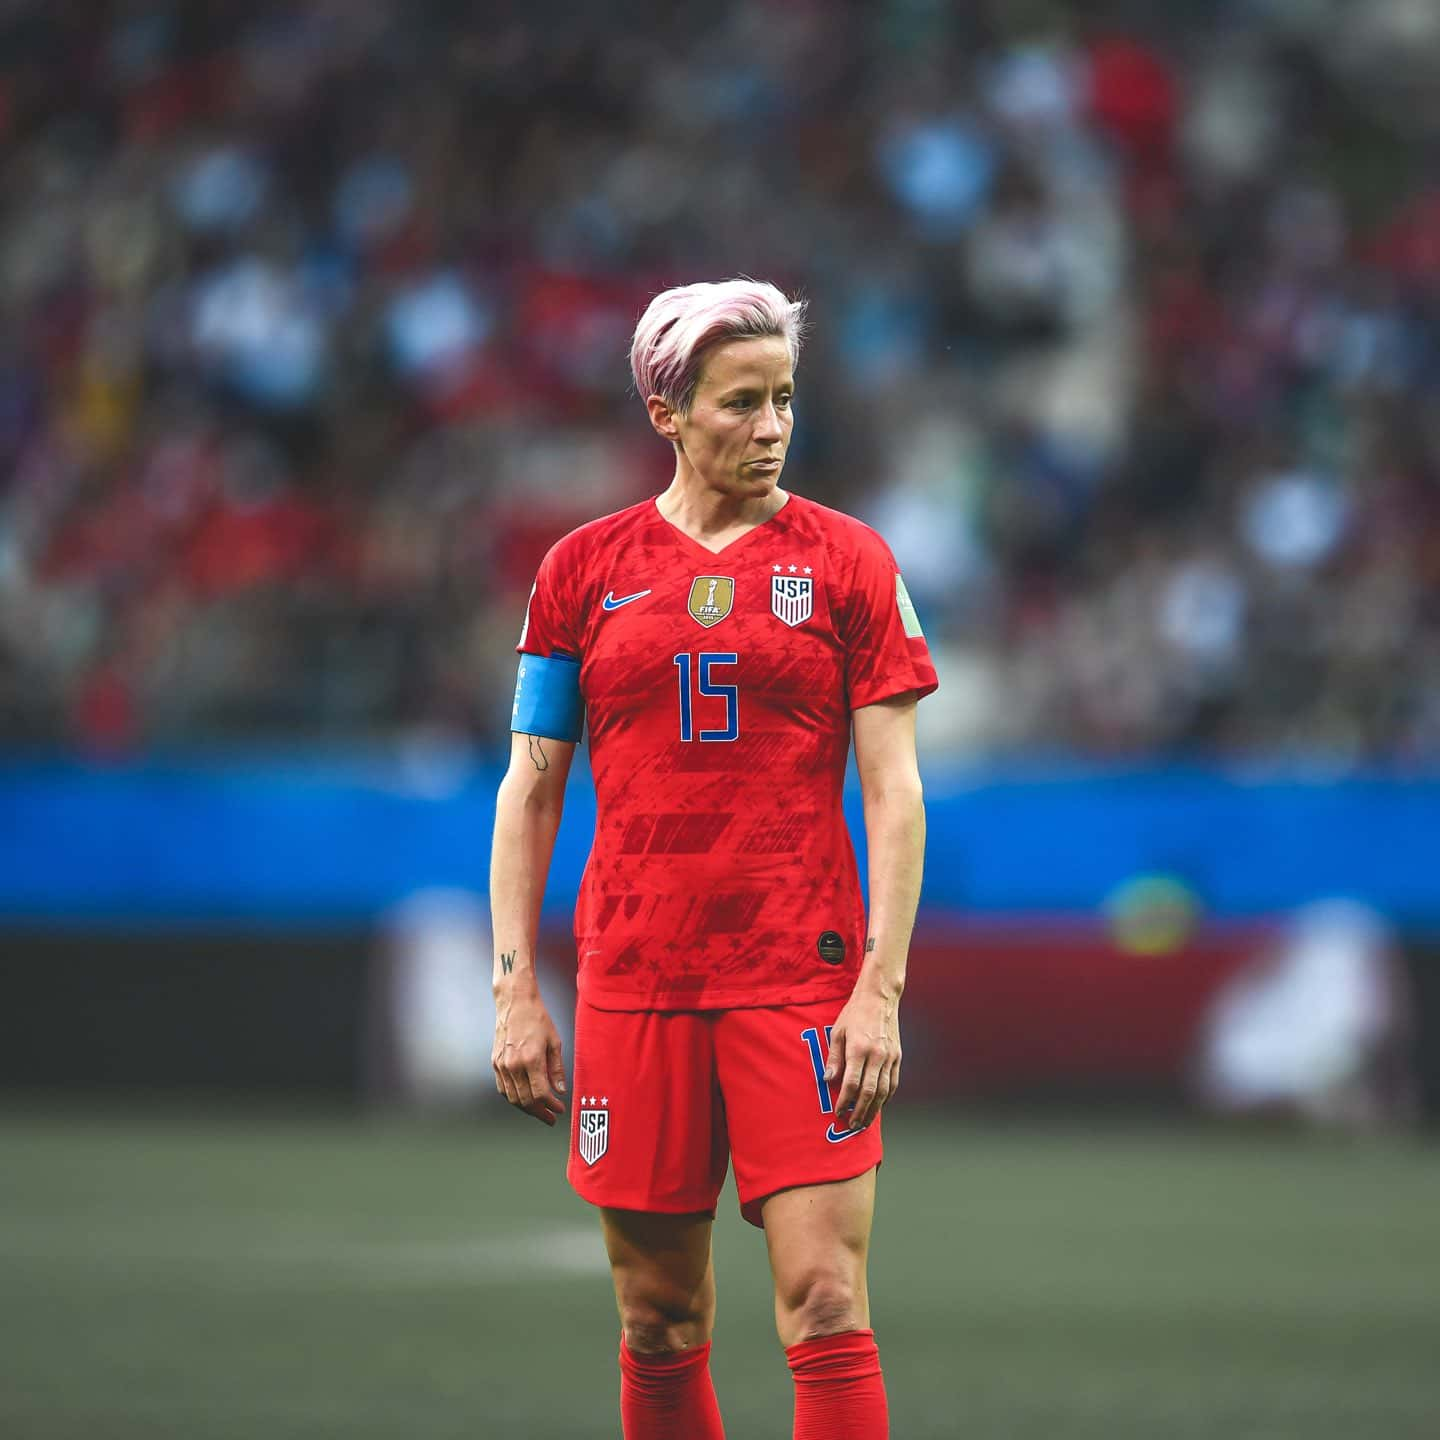 5da7f2c80 FIFA Women's World Cup 2019: USA vs. Spain - Preview, Schedule, TV Channels  & Start Time